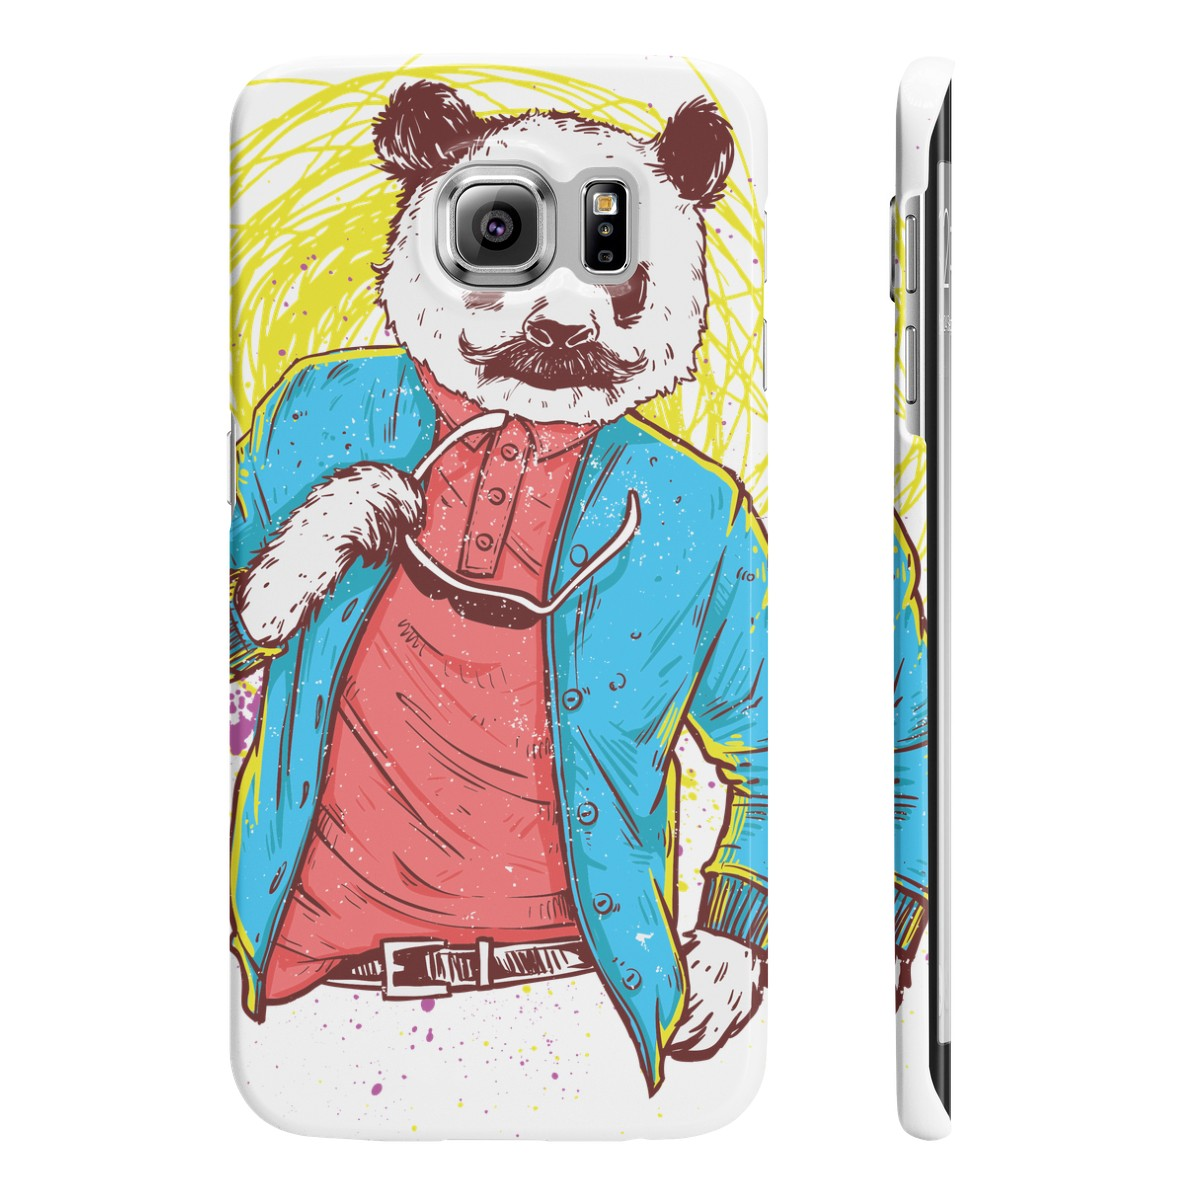 Panda Bear Slim Phone Cases